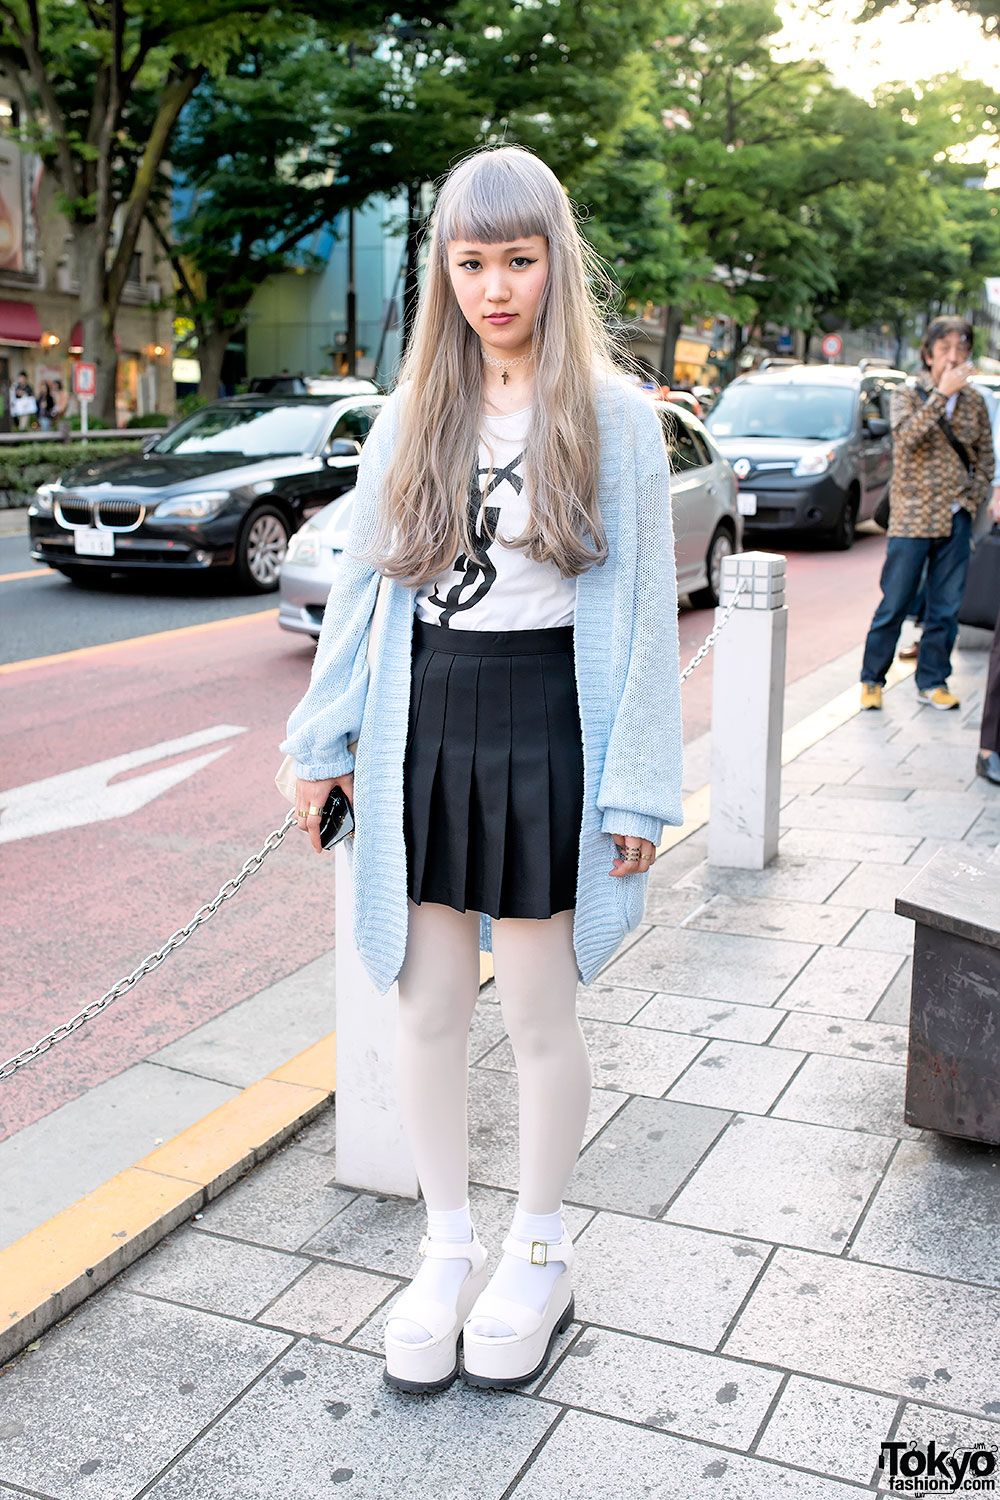 Maiko is a 19-year-old student who caught our eye on Omotesando Dori in Harajuku.  Pastel Hair, YSL Top, Pleated Skirt & LDS Platform Sandals in Harajuku Knit Sweater & Cheerleader Skirt in Harajuku – Tokyo Fashion News